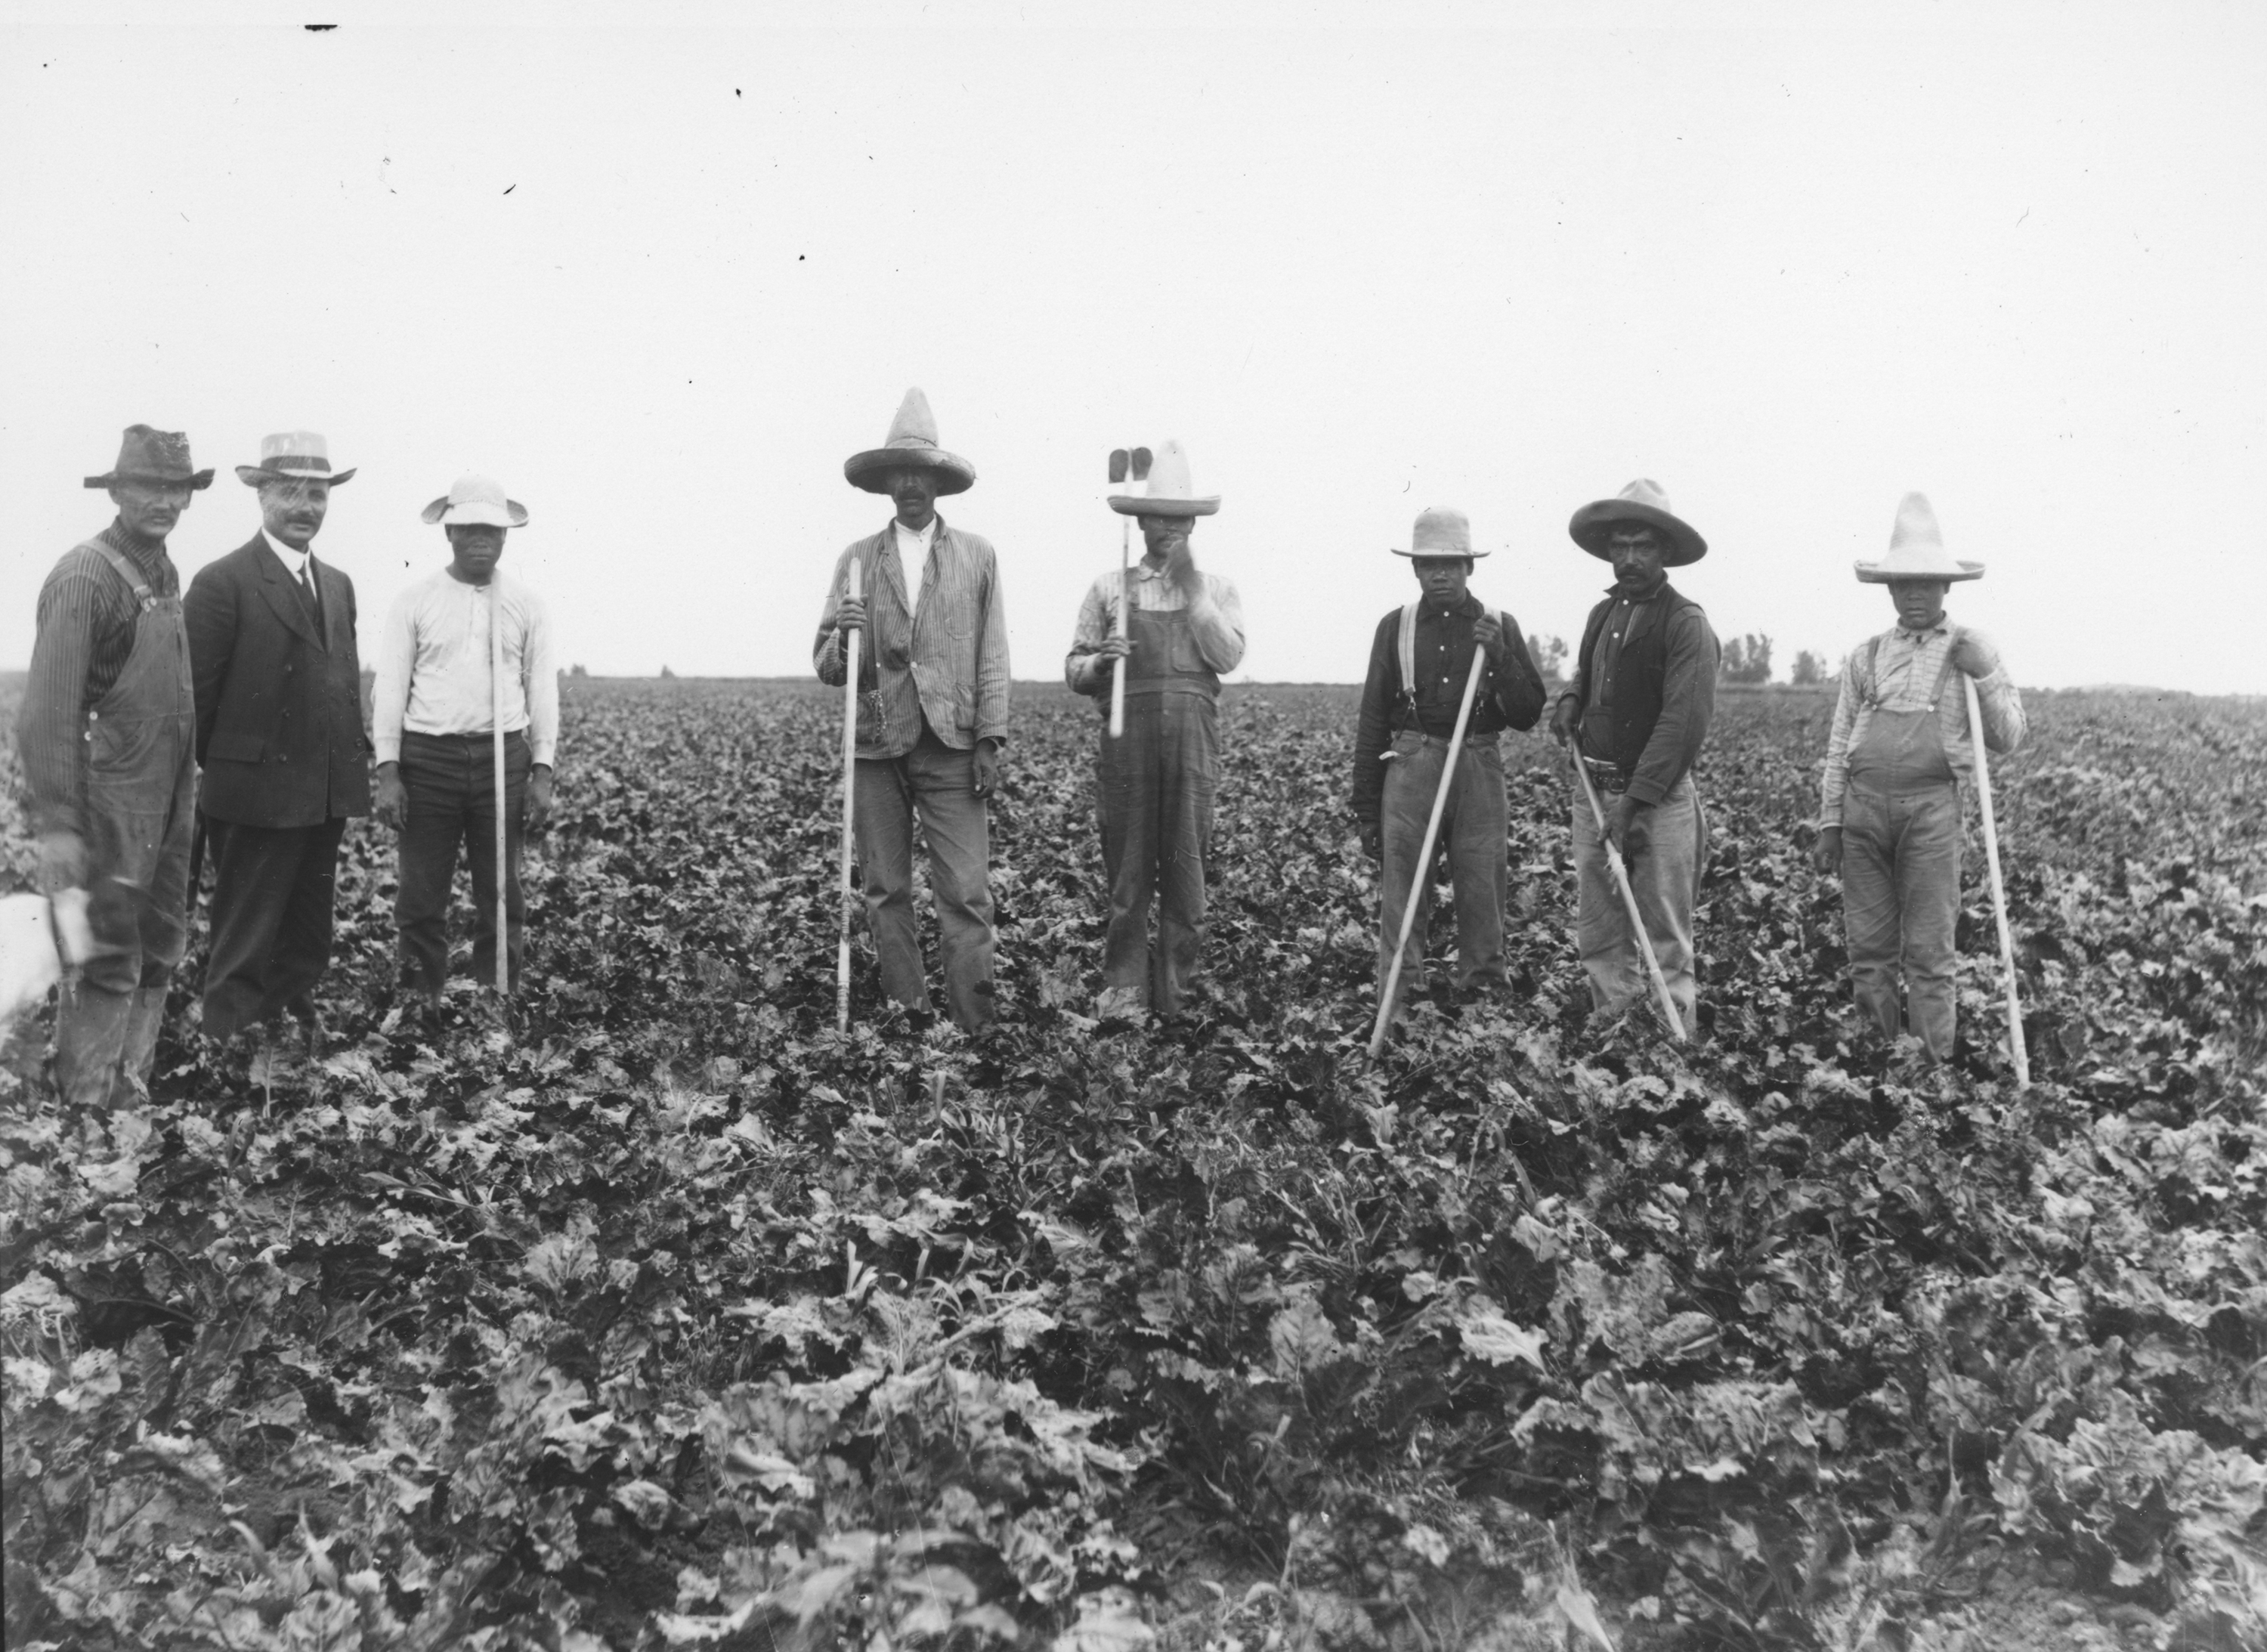 laborers in field of beets